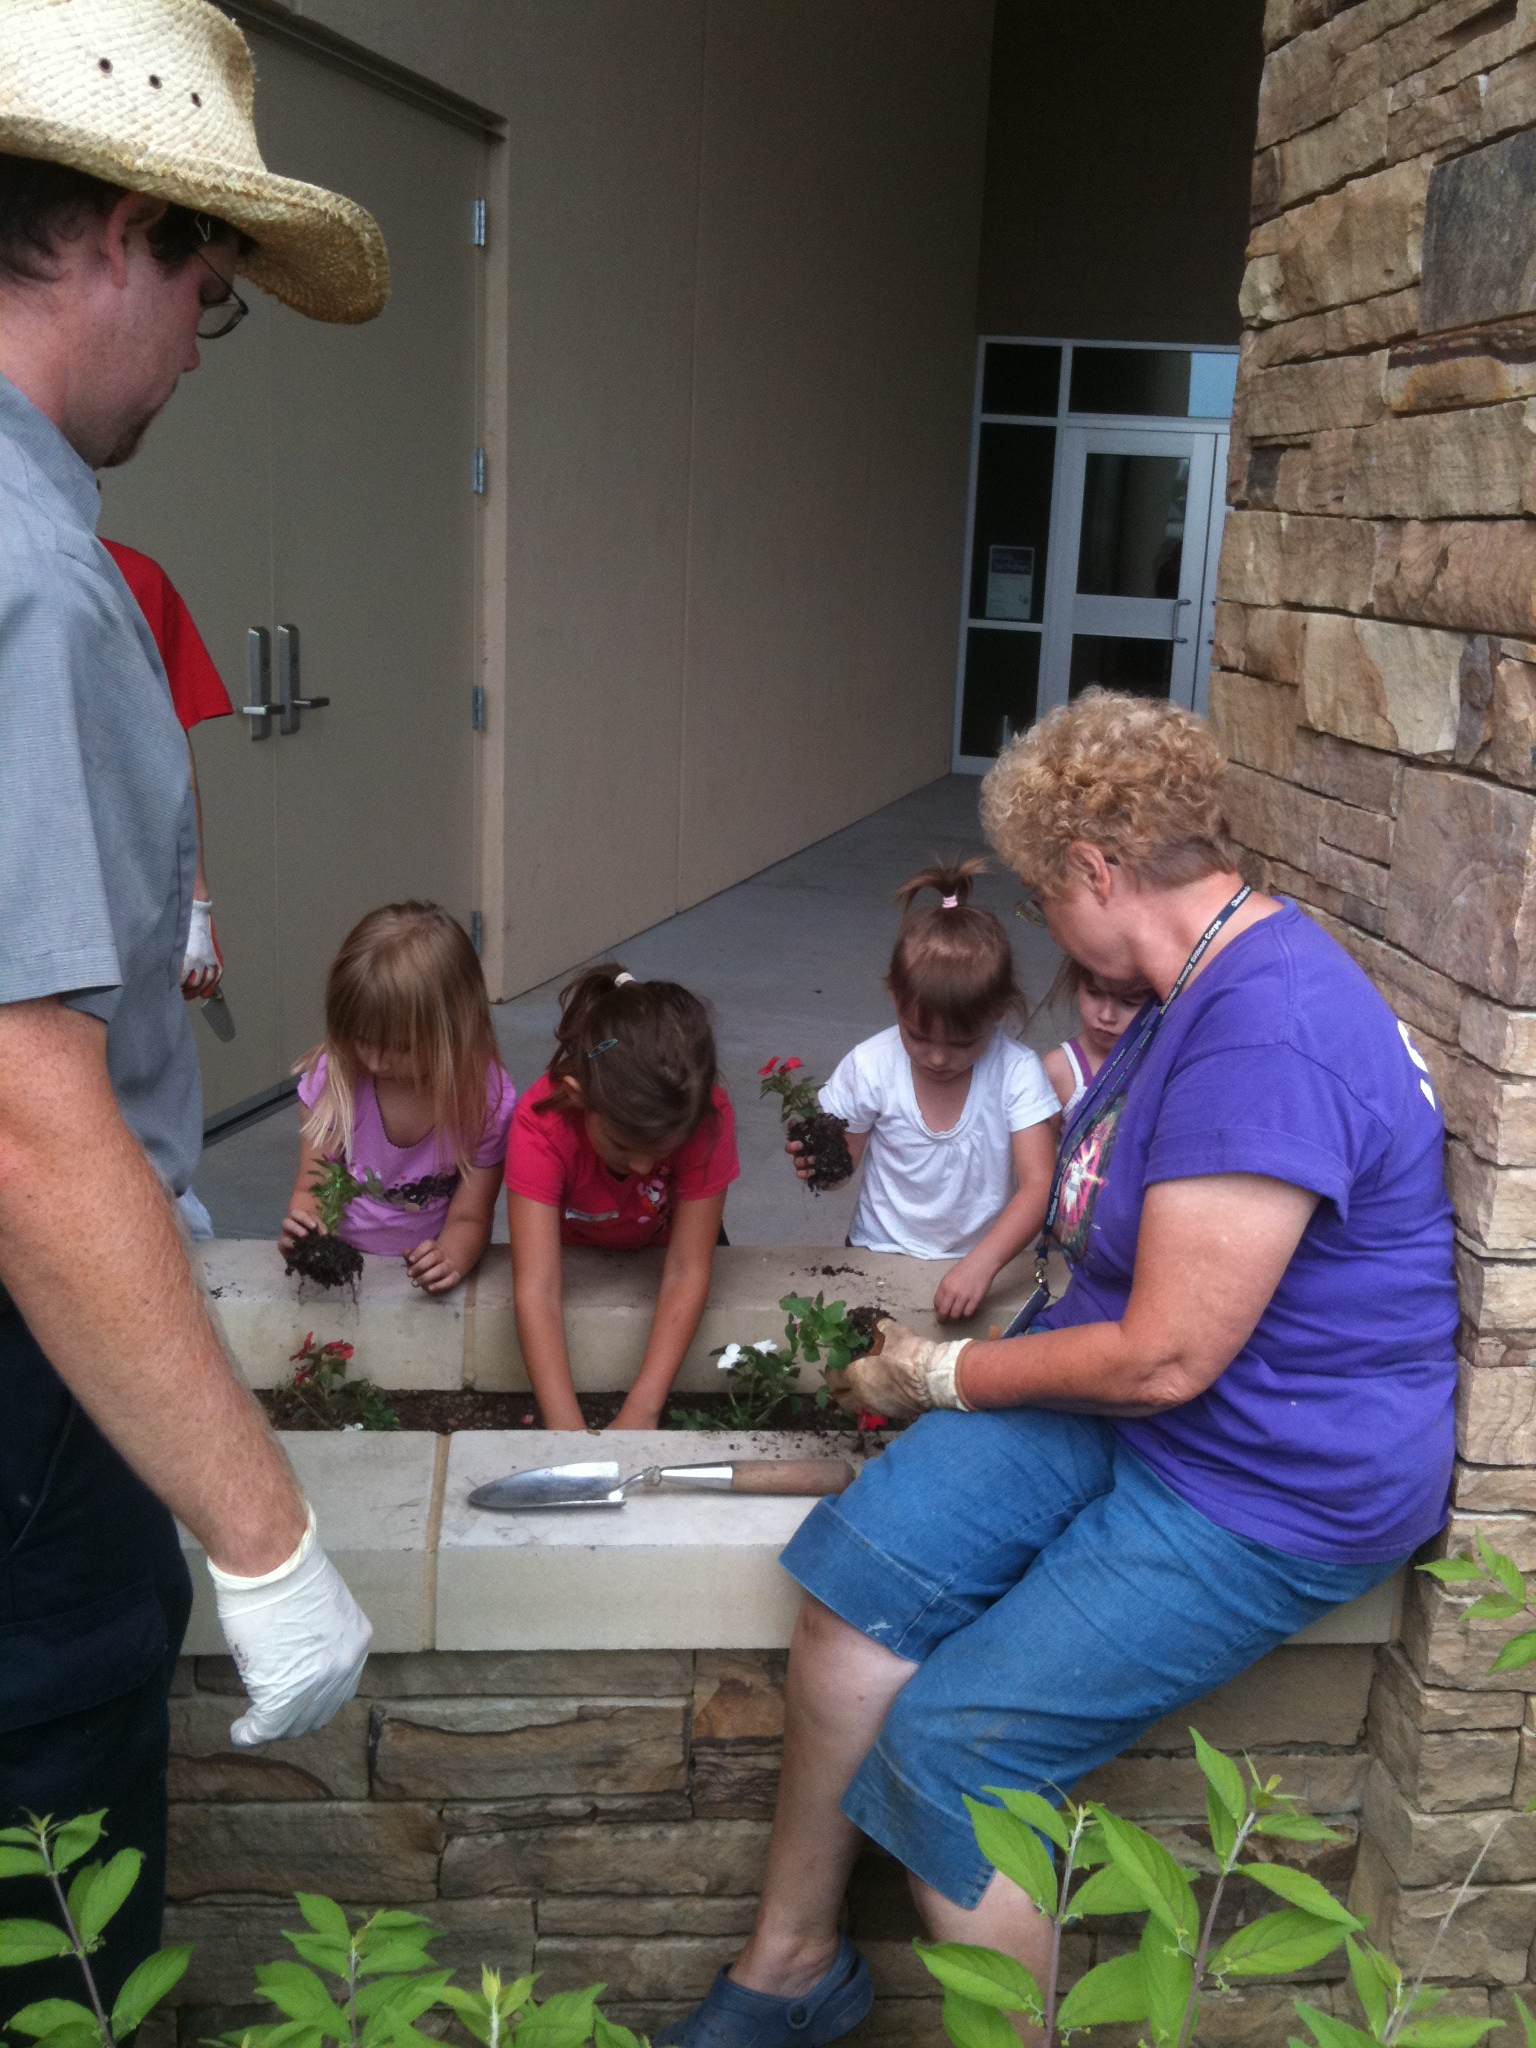 Helping Horticulture Dept. plant flowers